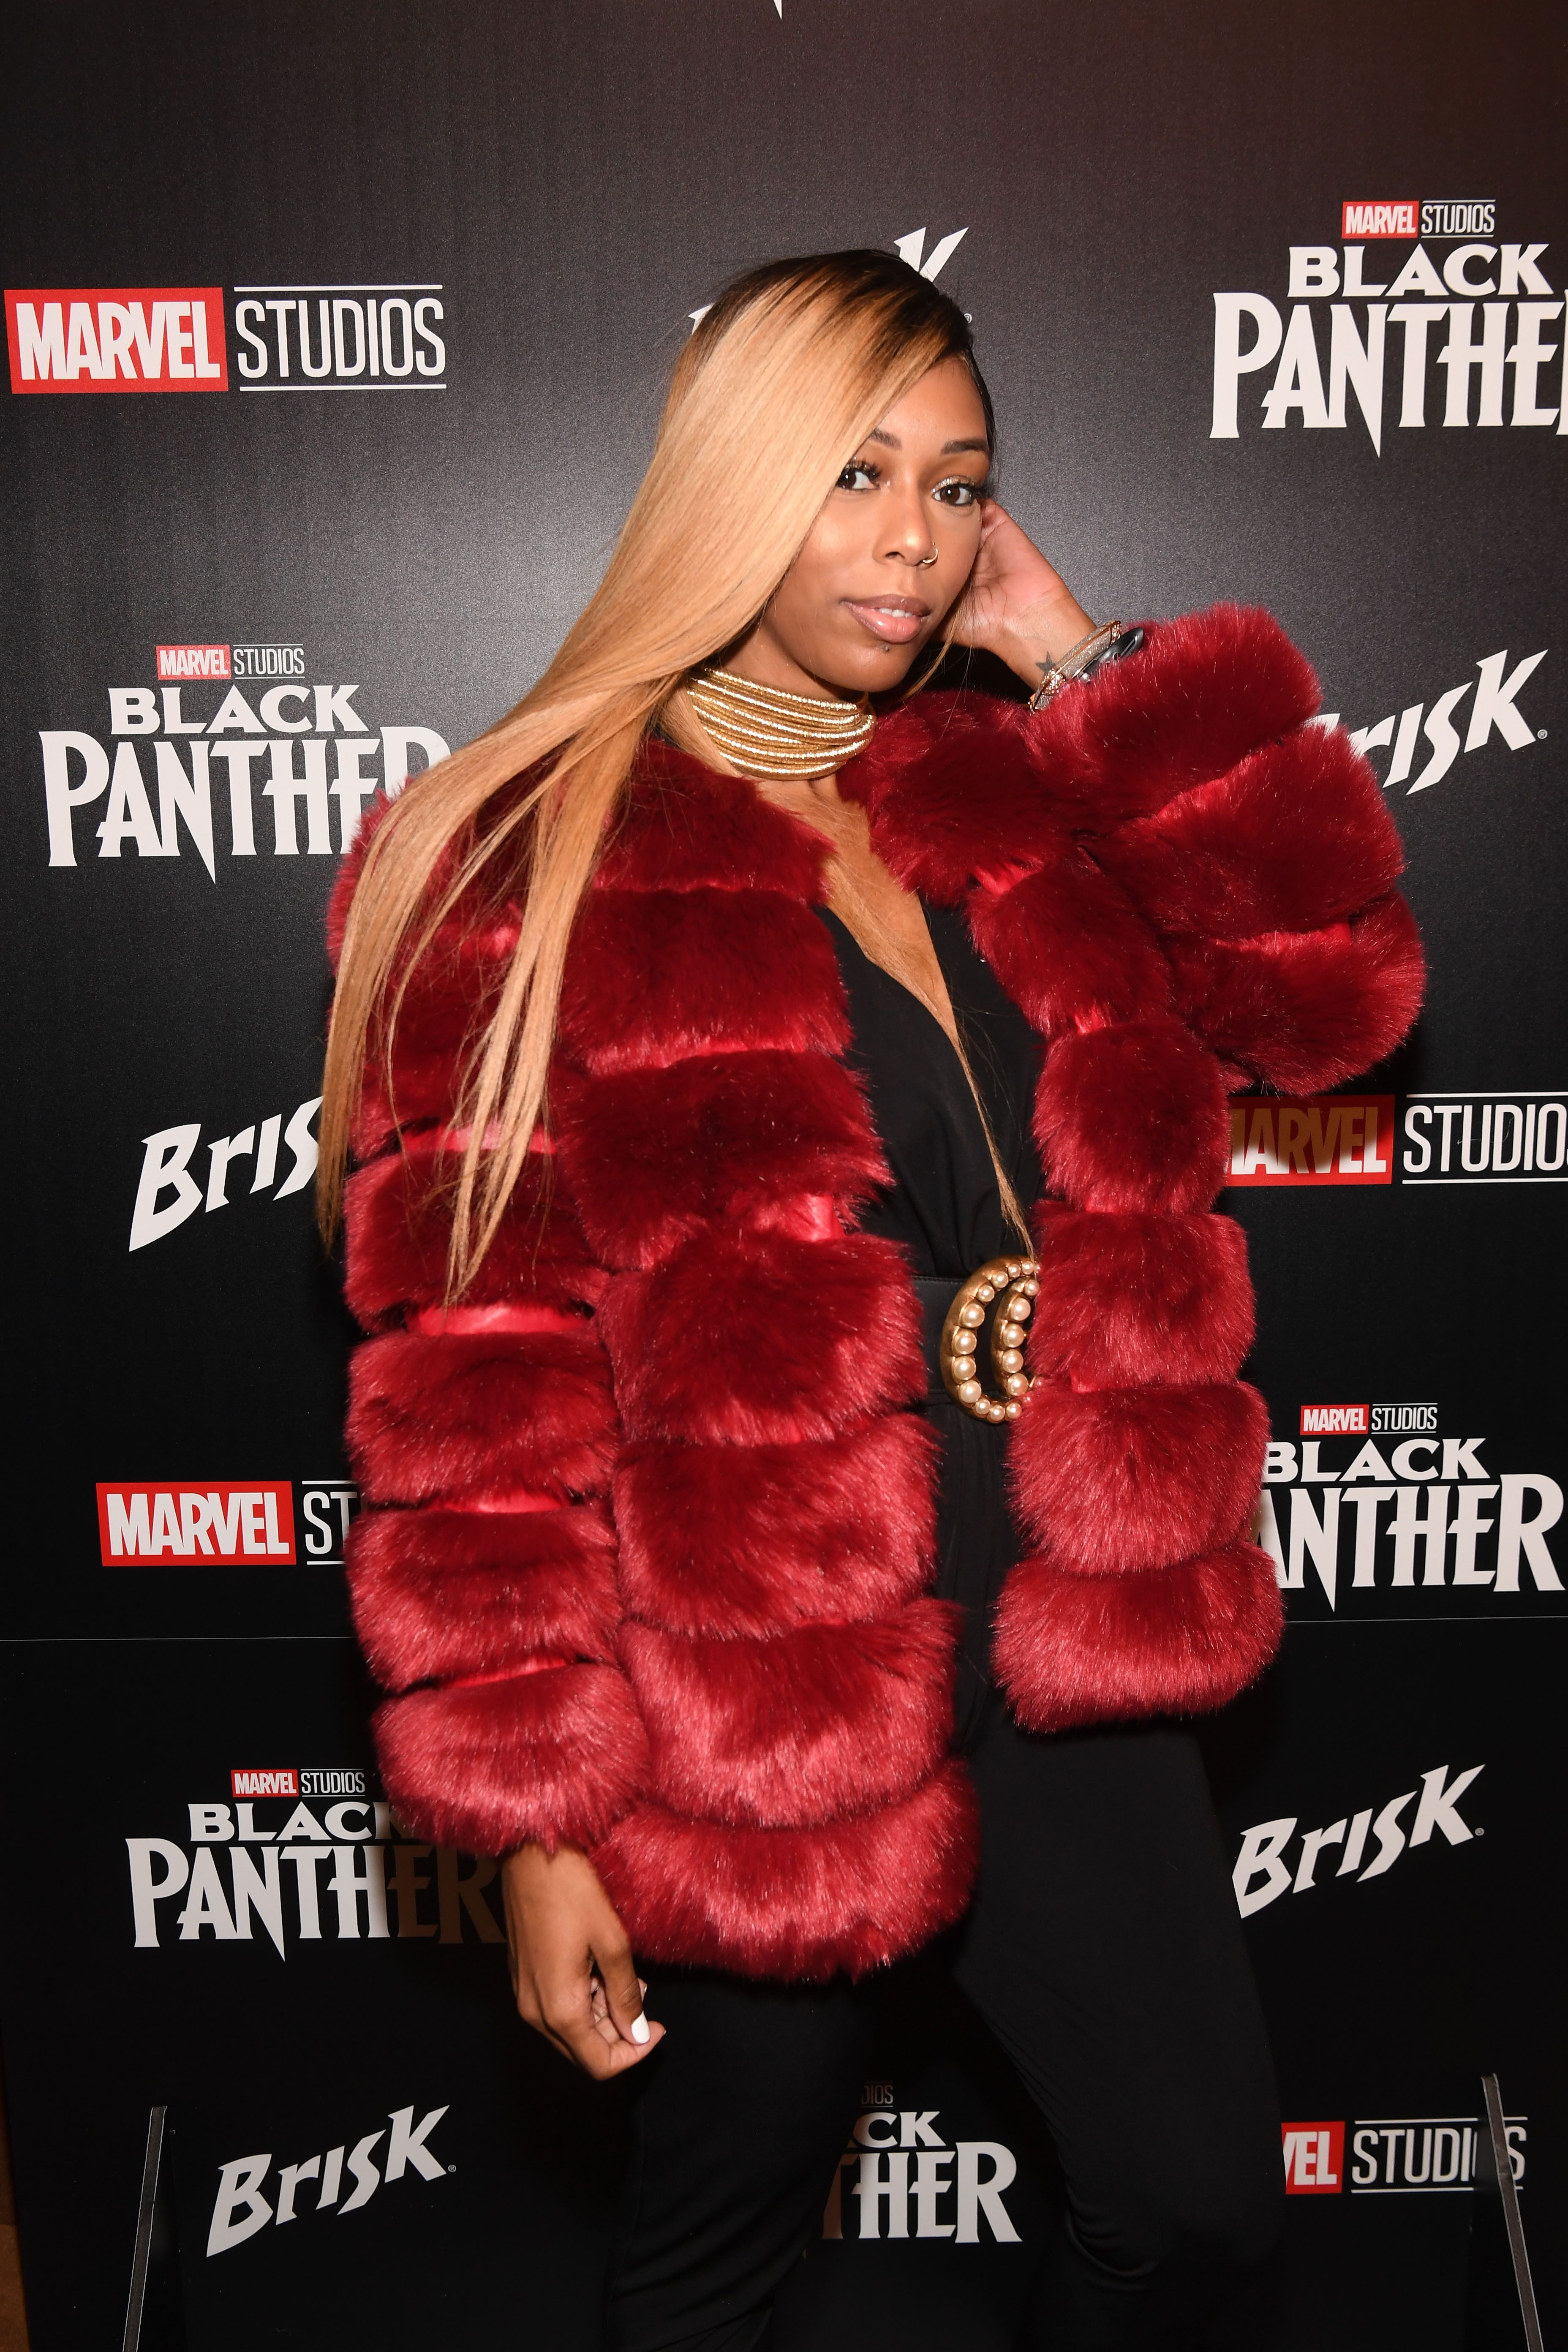 """Bambi Benson at the """"Black Panther"""" advanced screening & panel discussion on February 14, 2018 in Atlanta.   Photo: Getty Images"""